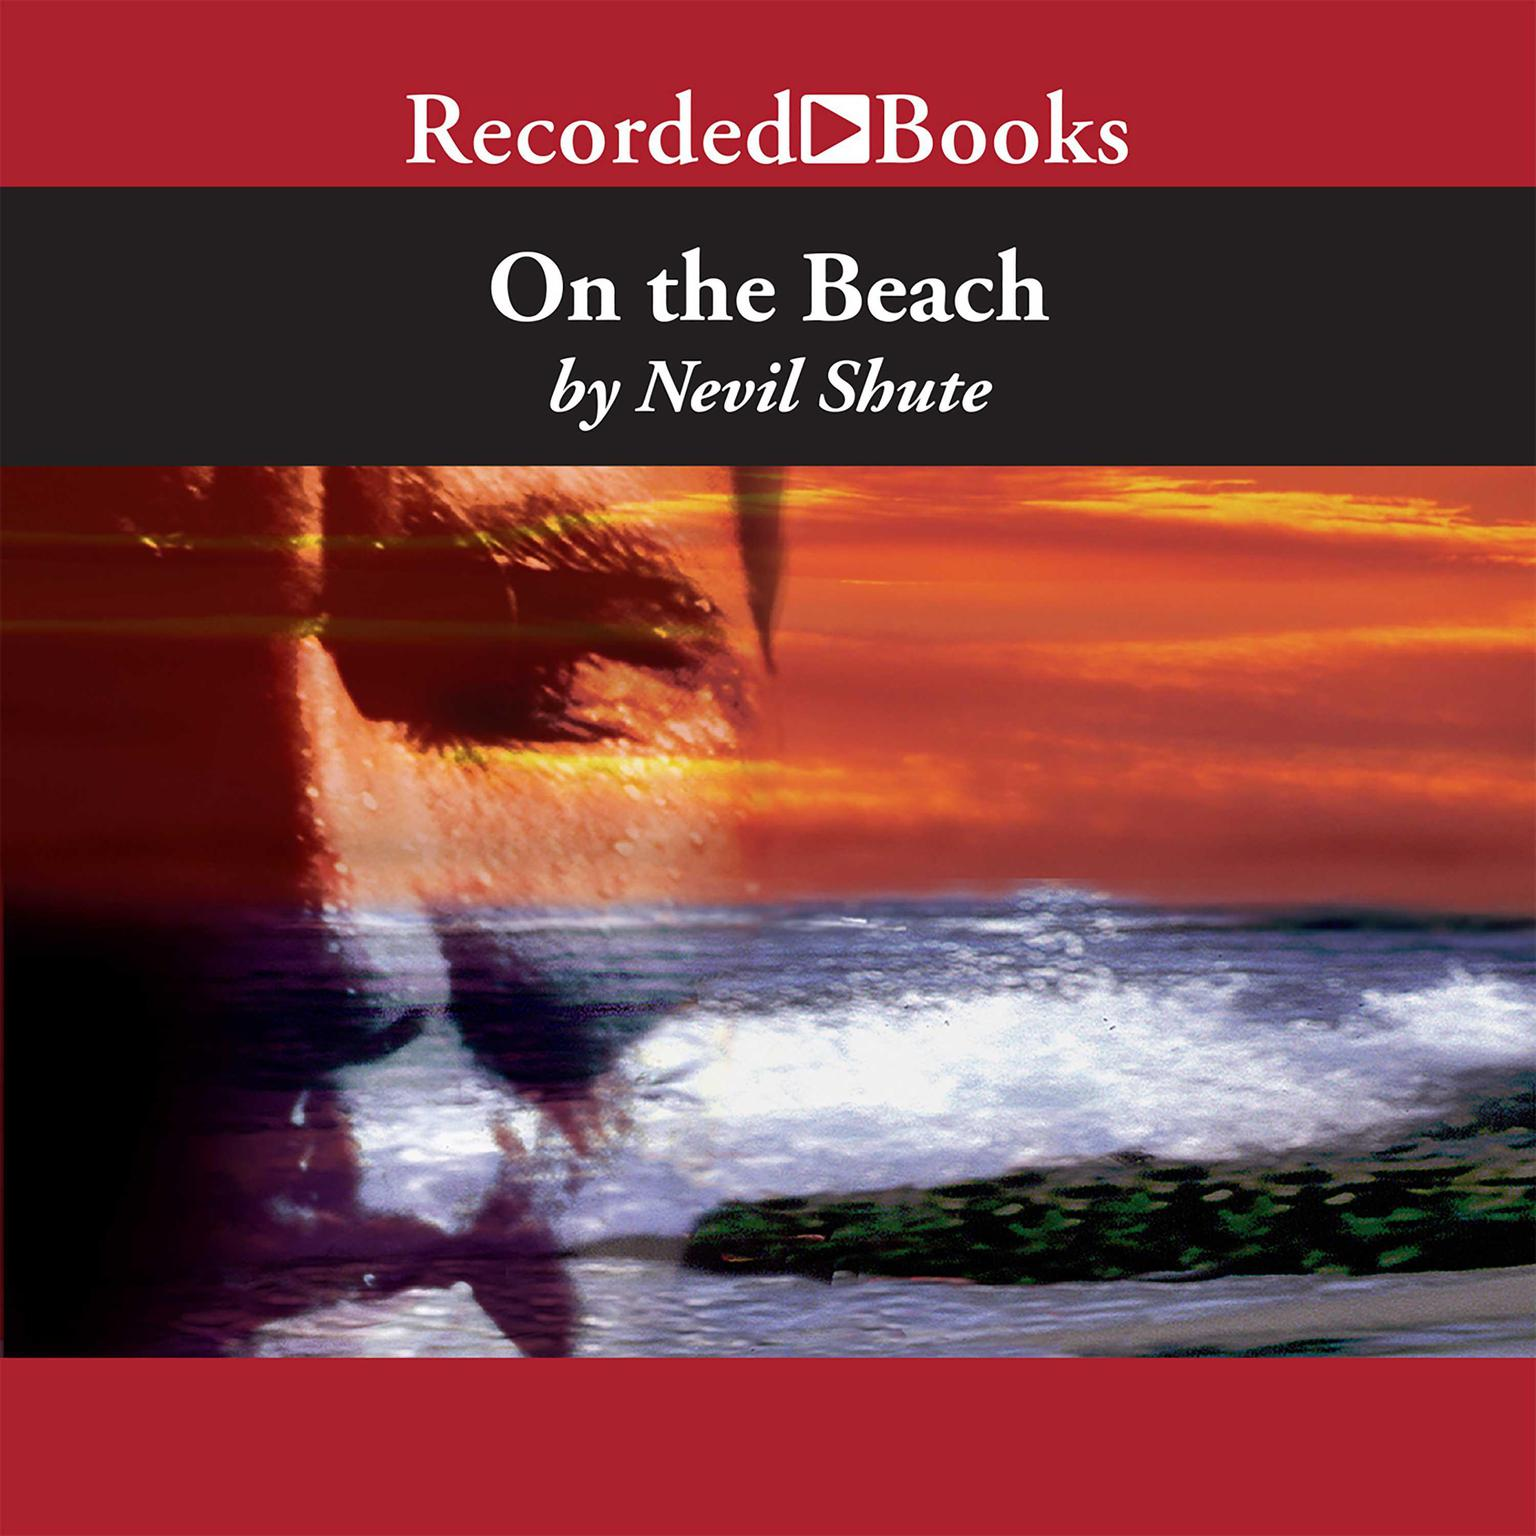 On The Beach Audiobook Listen Instantly!